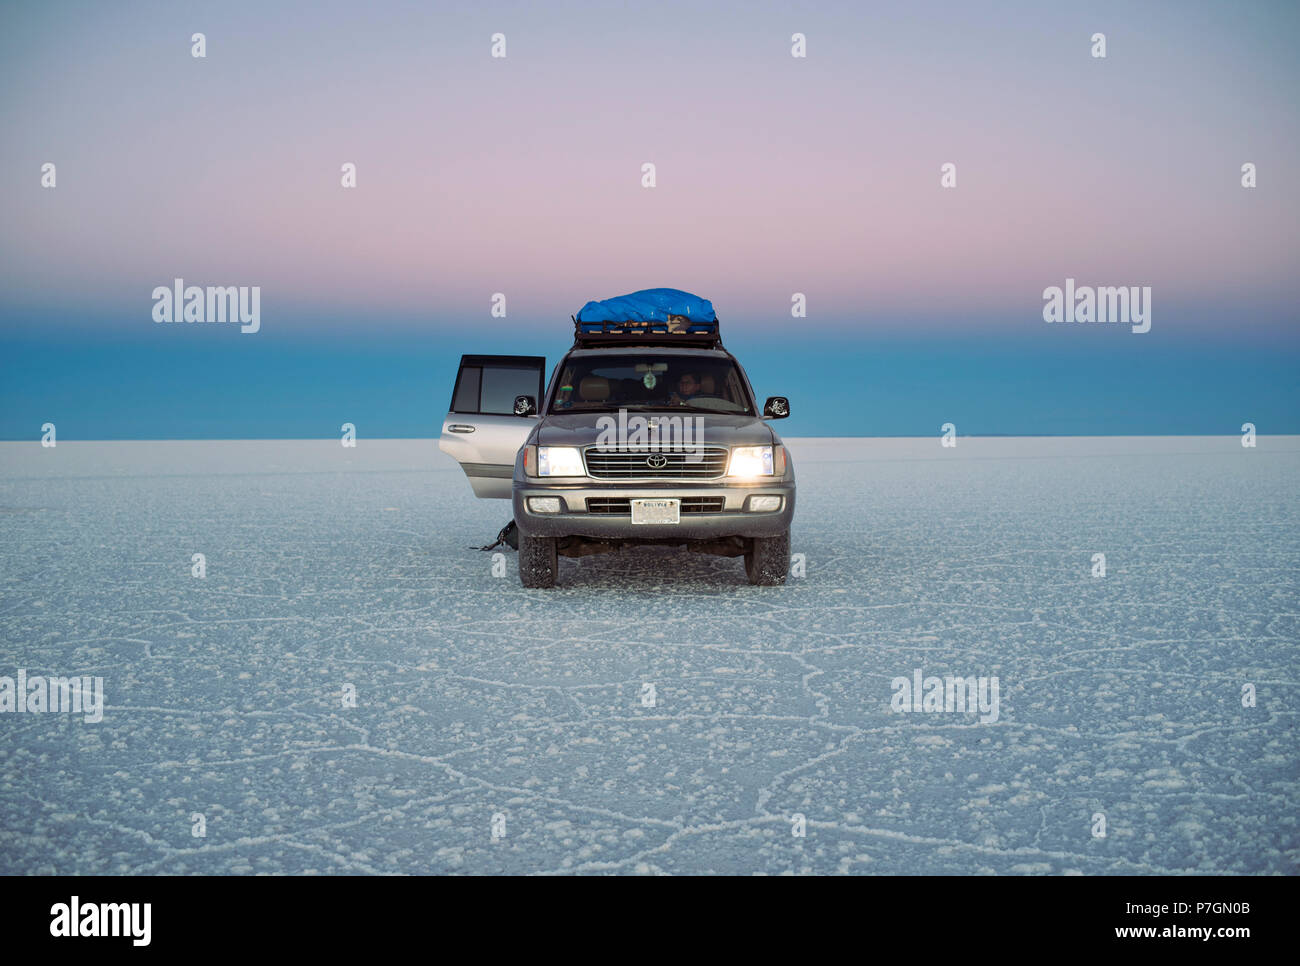 Land Cruiser pendant le crépuscule dans d'Uyuni Salar de Uyuni (Bolivie), l'Amérique du Sud. Jun 2018 Photo Stock